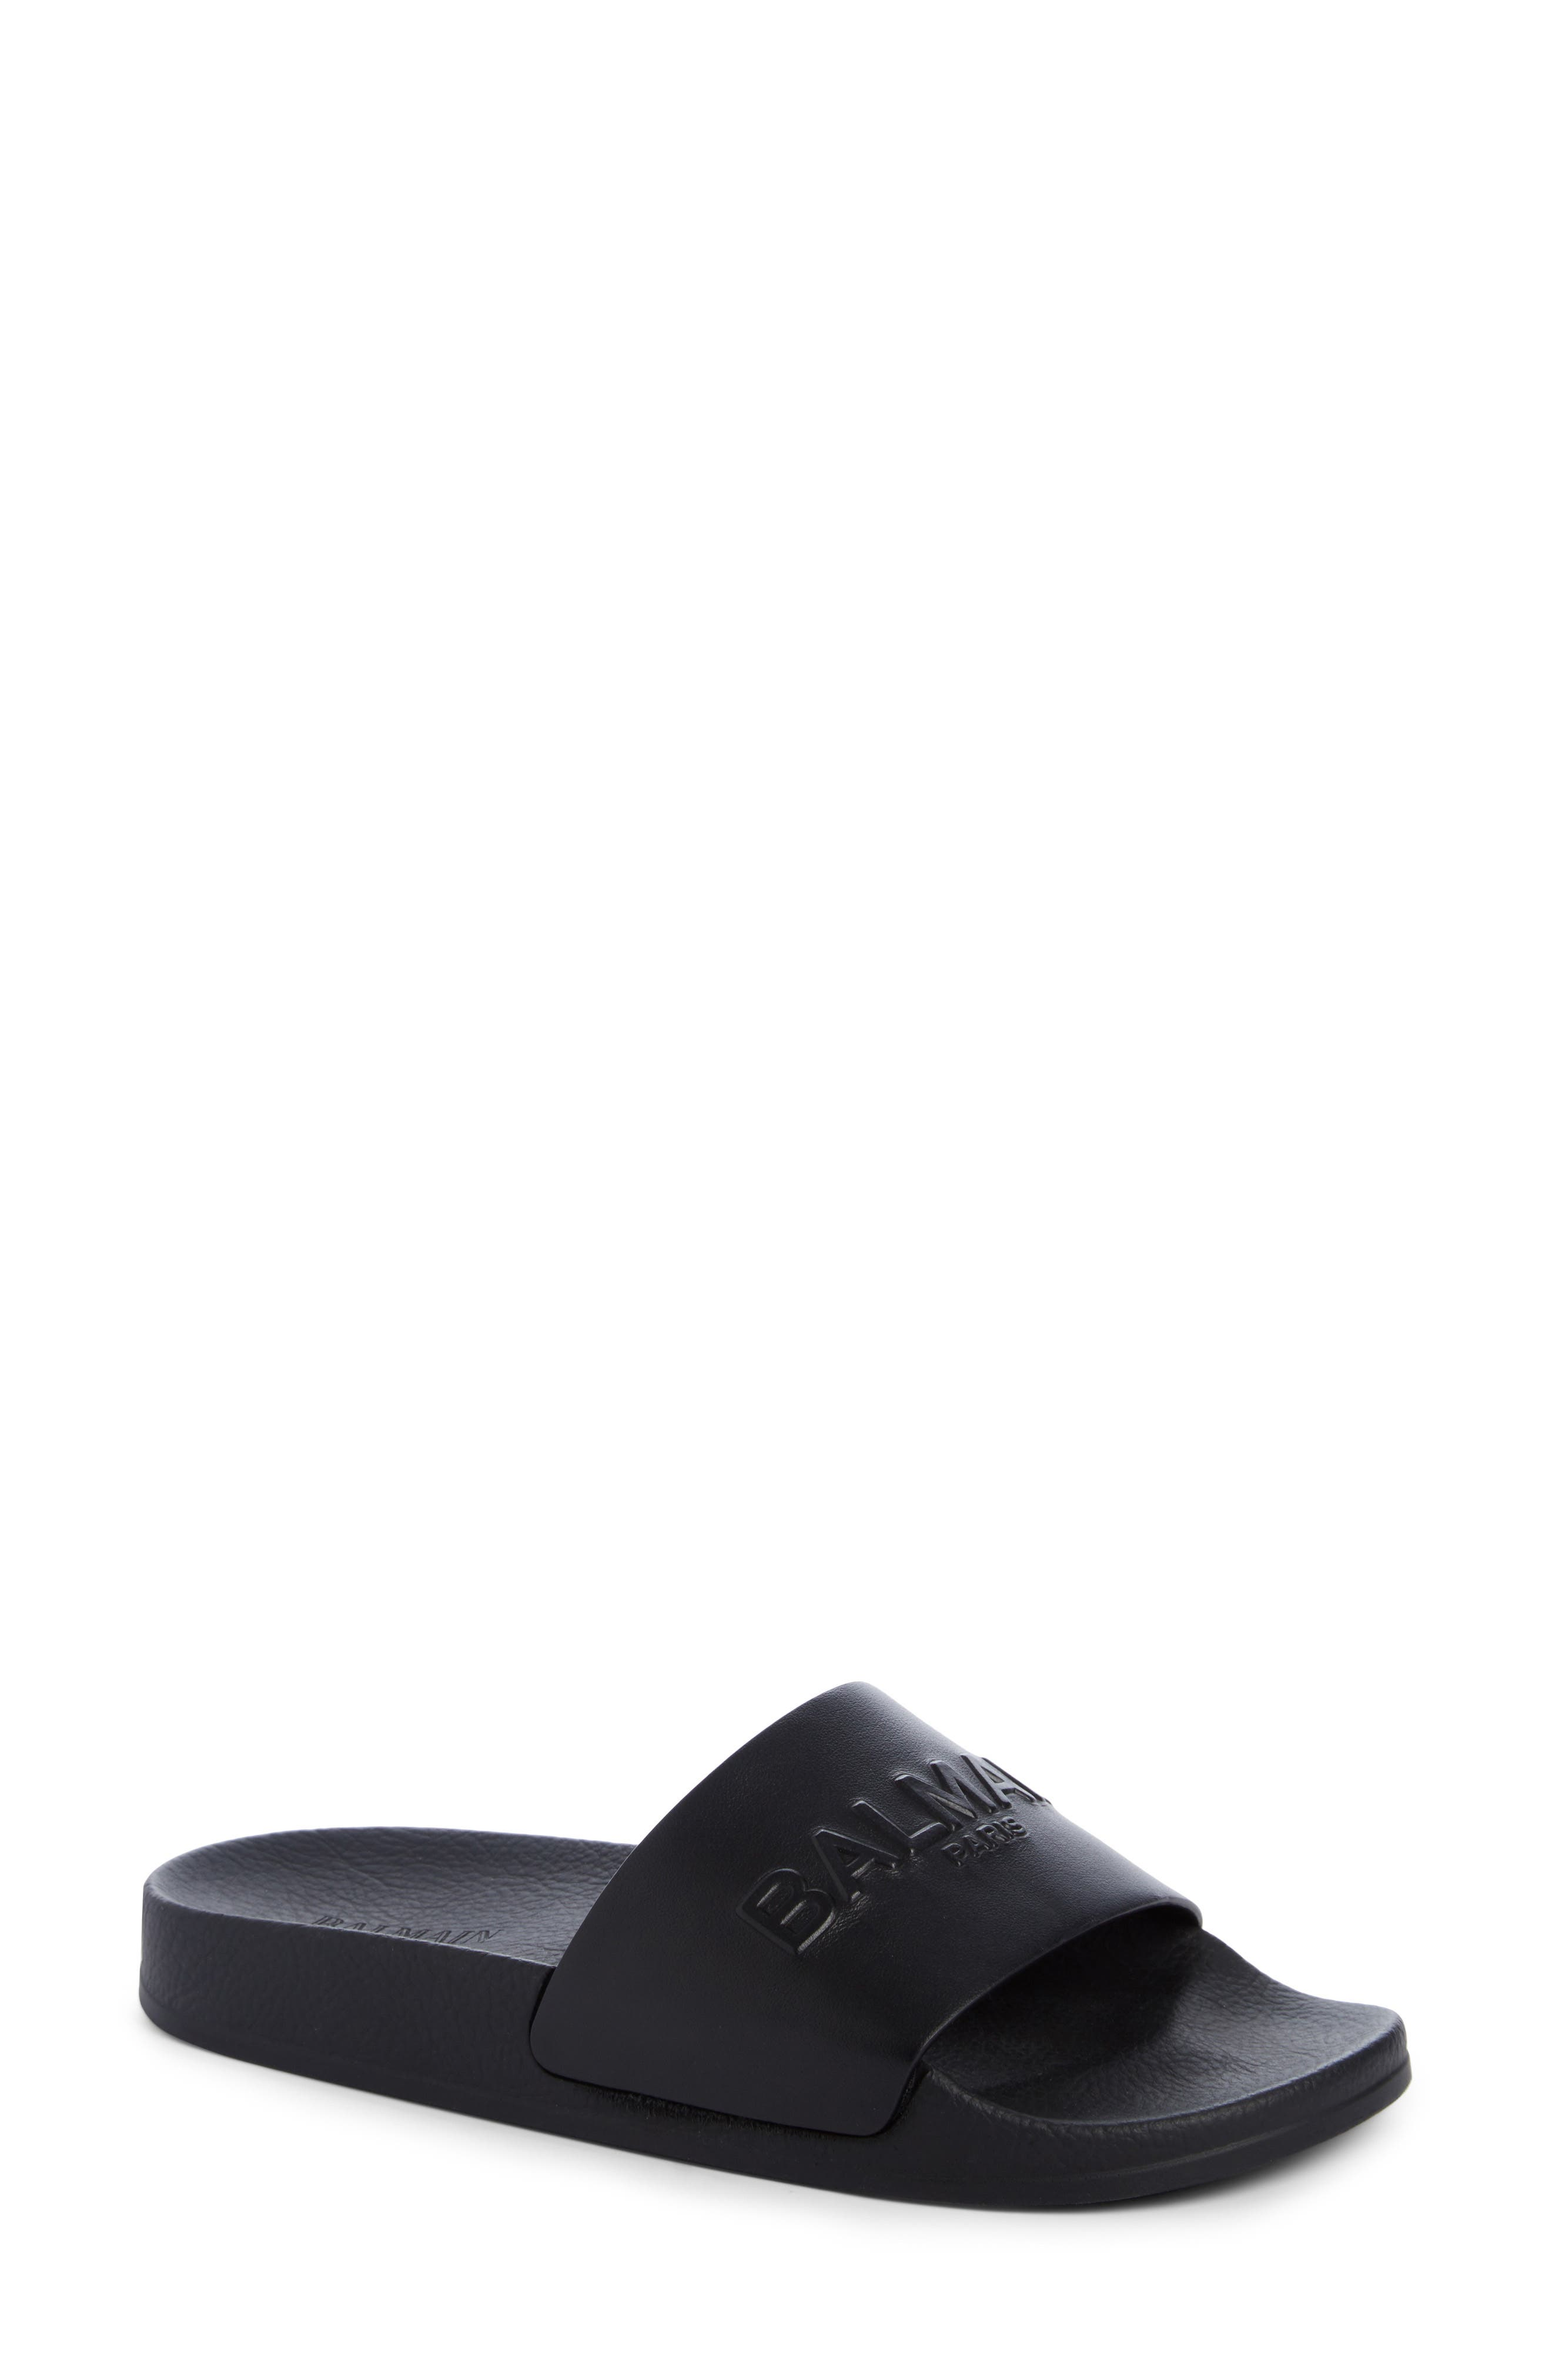 Calypso Logo Strap Slide Sandal,                             Main thumbnail 1, color,                             BLACK